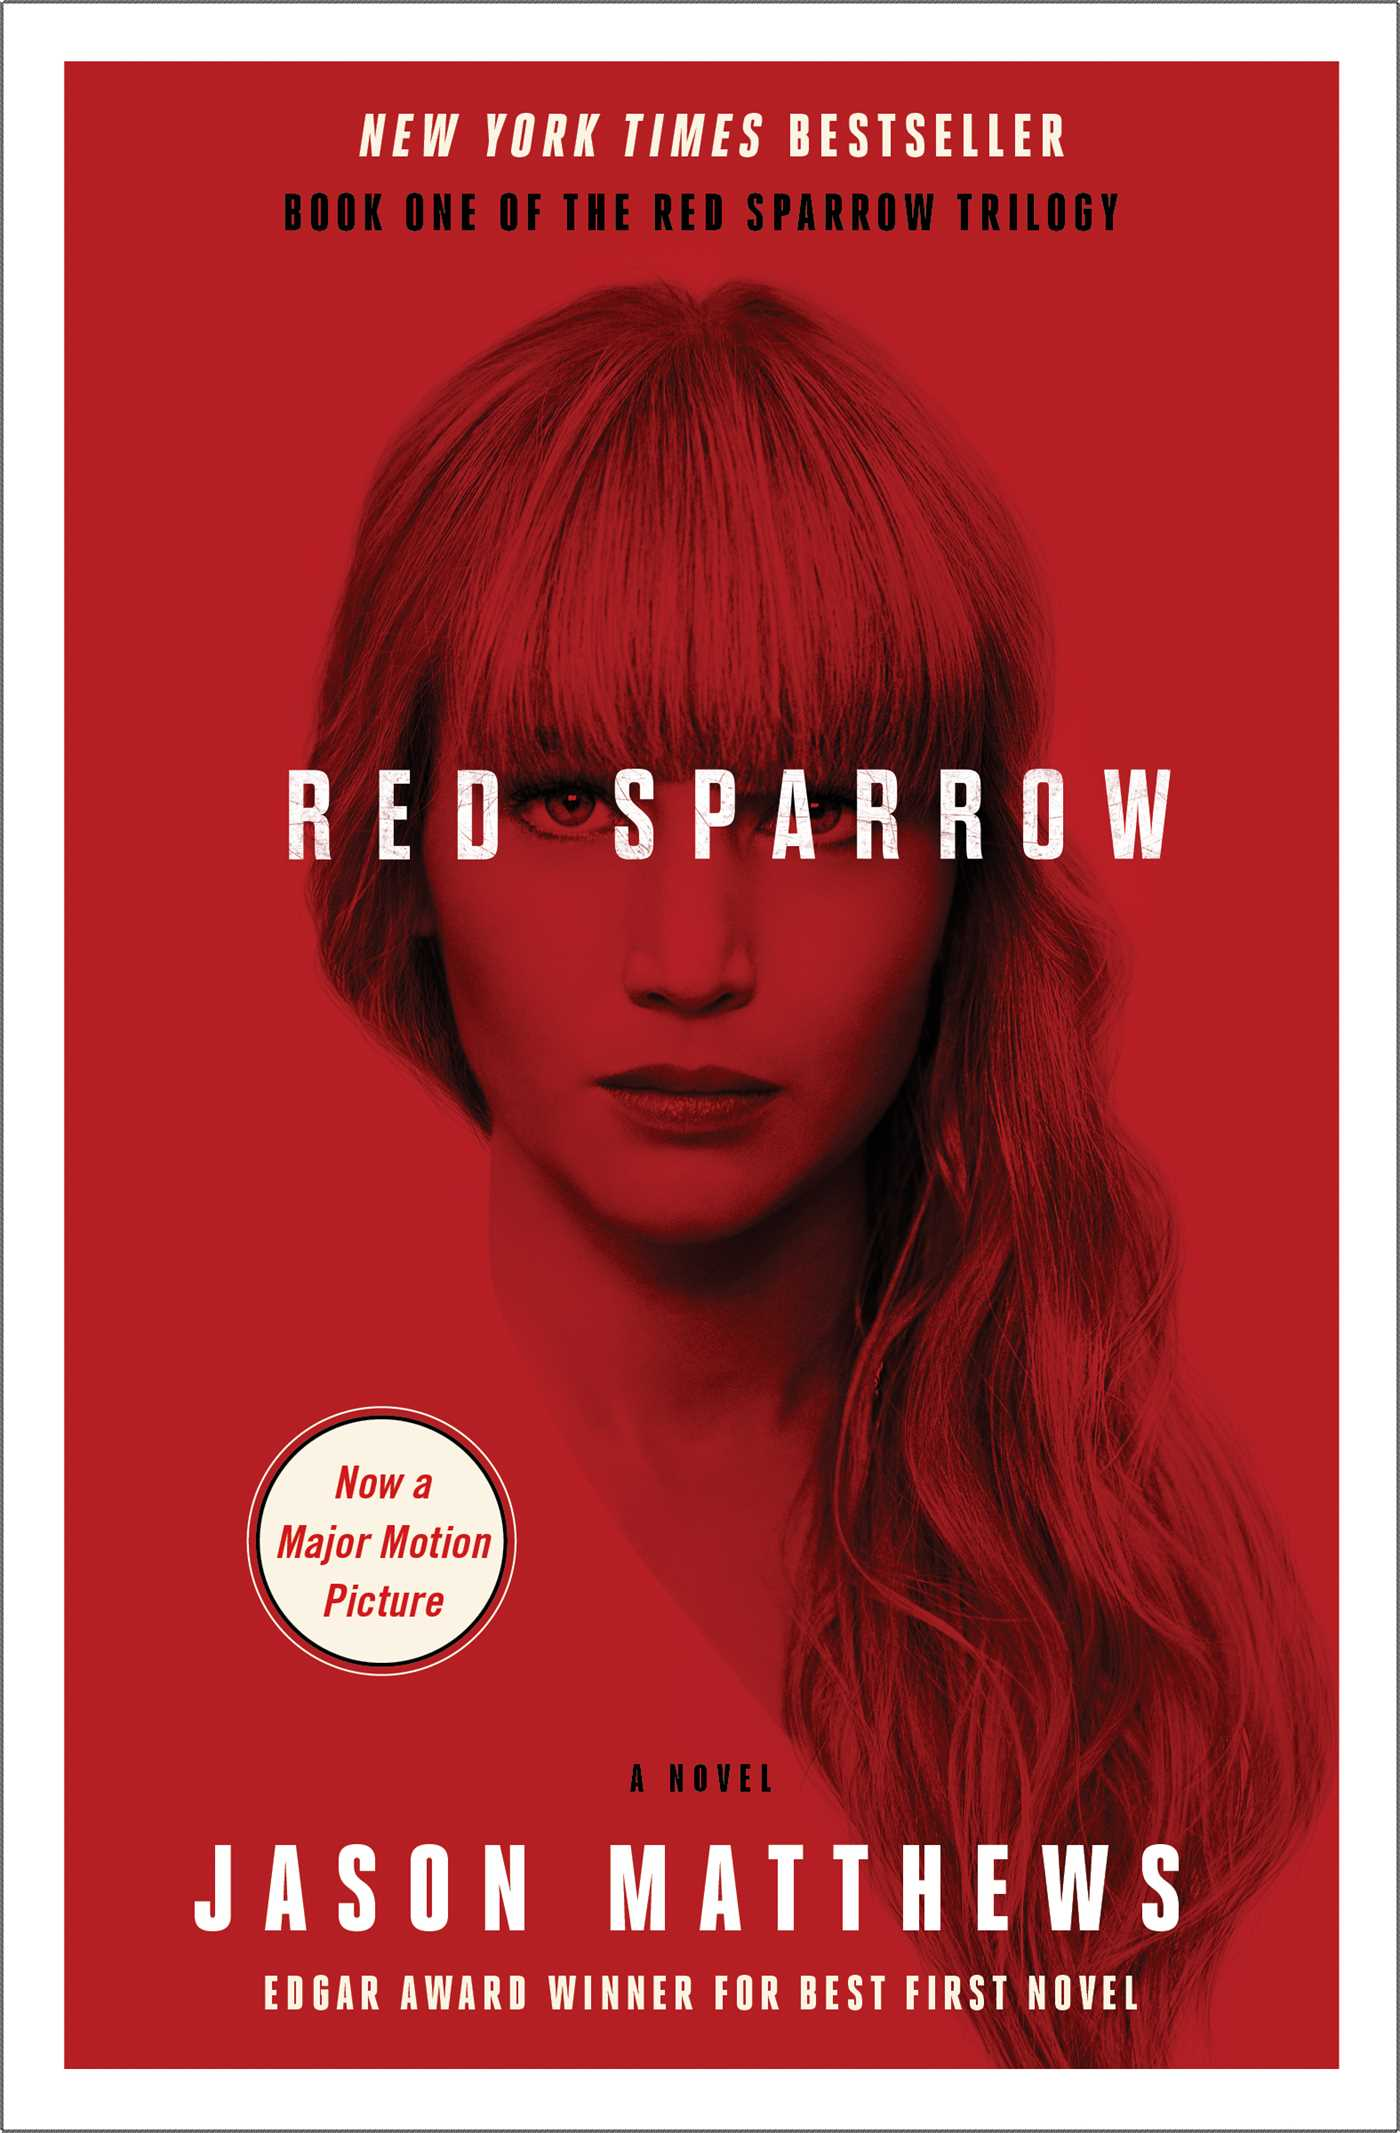 Red sparrow 9781476706146 hr